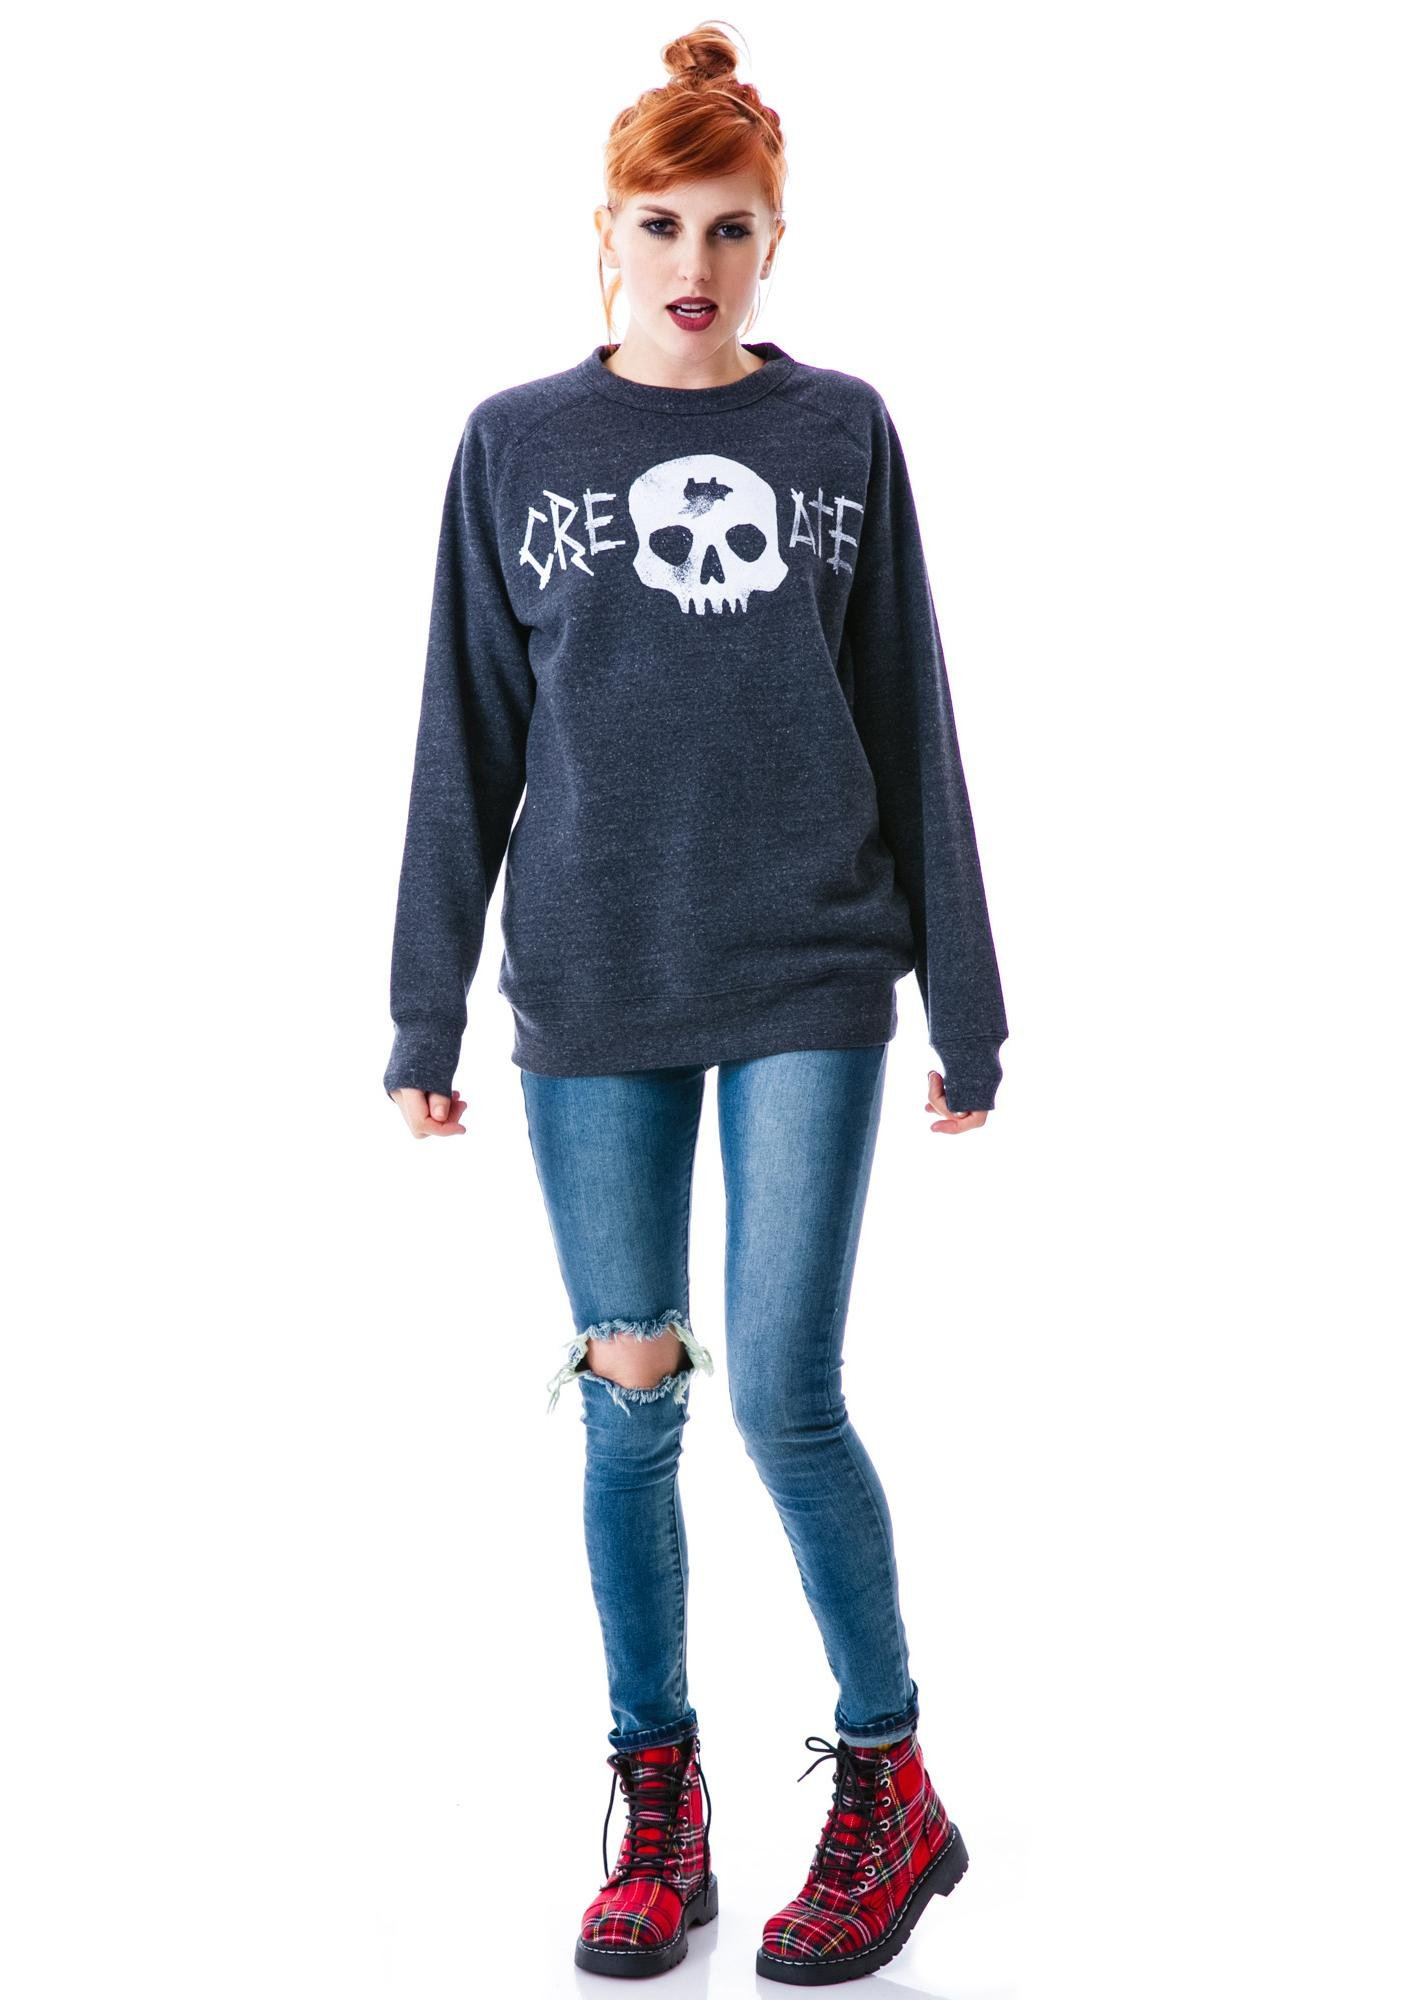 Glamour Kills Use Your Head Crew Sweatshirt